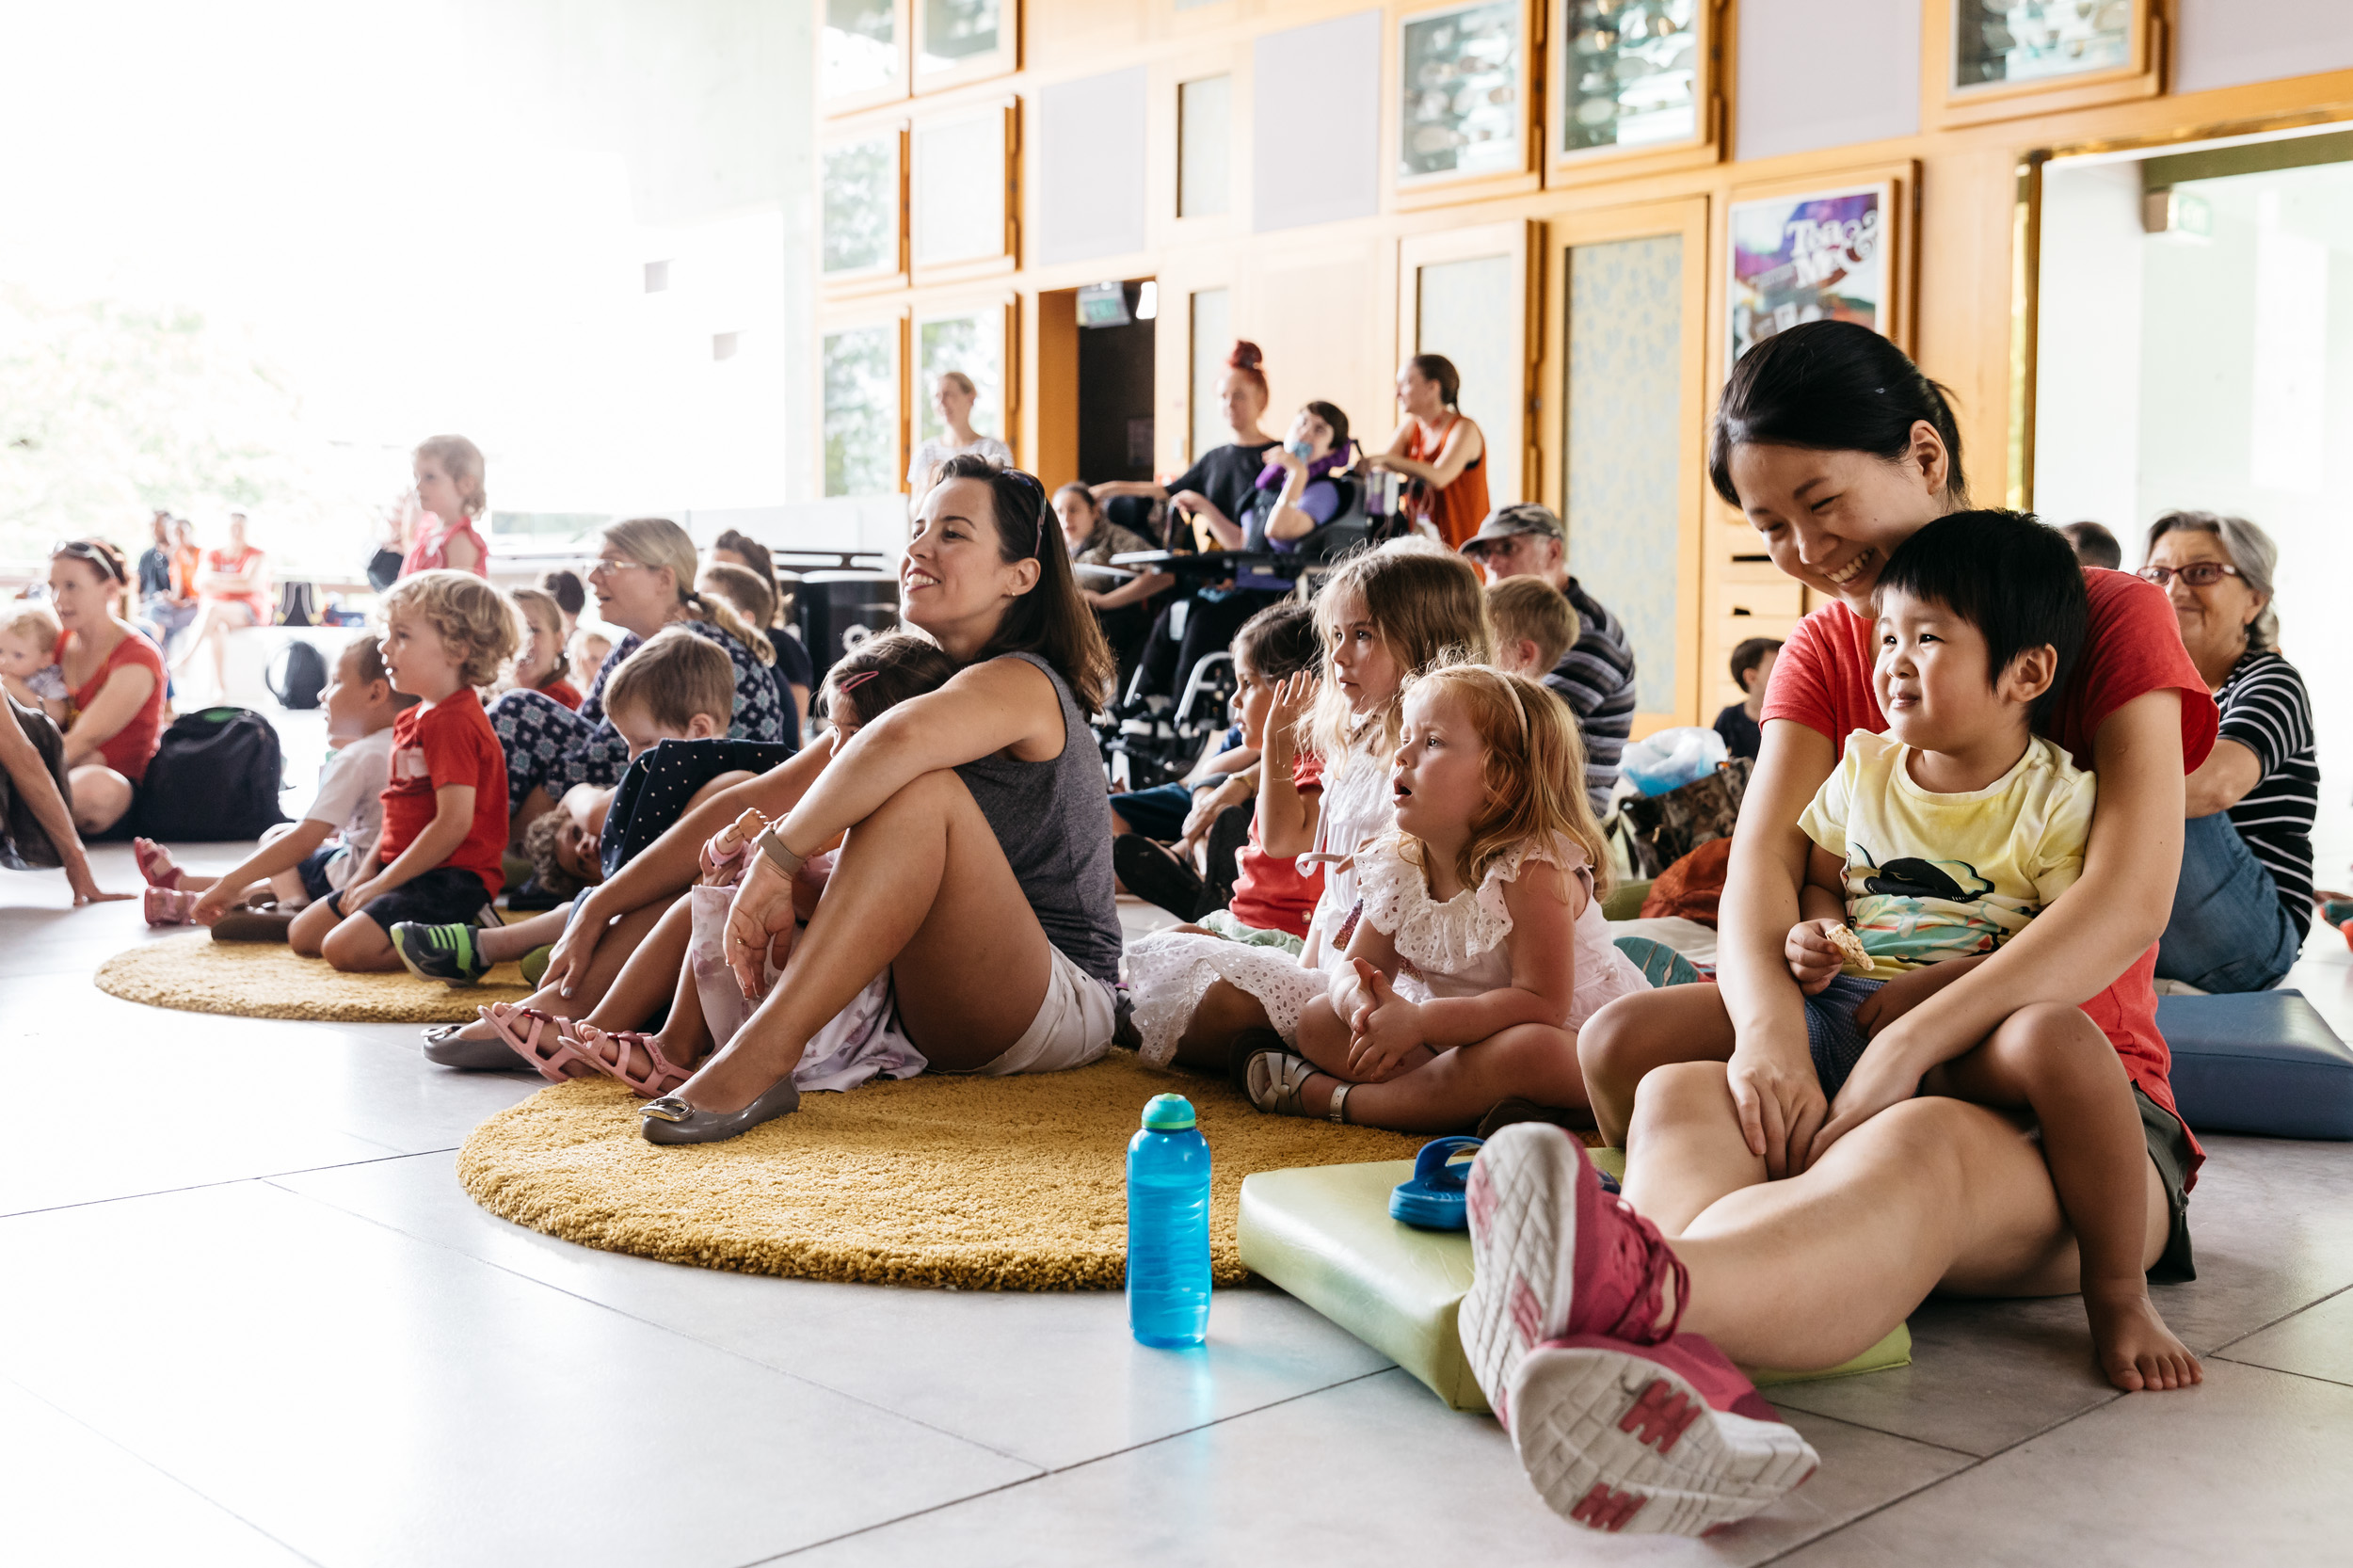 Parents and children enjoying a storytime performance